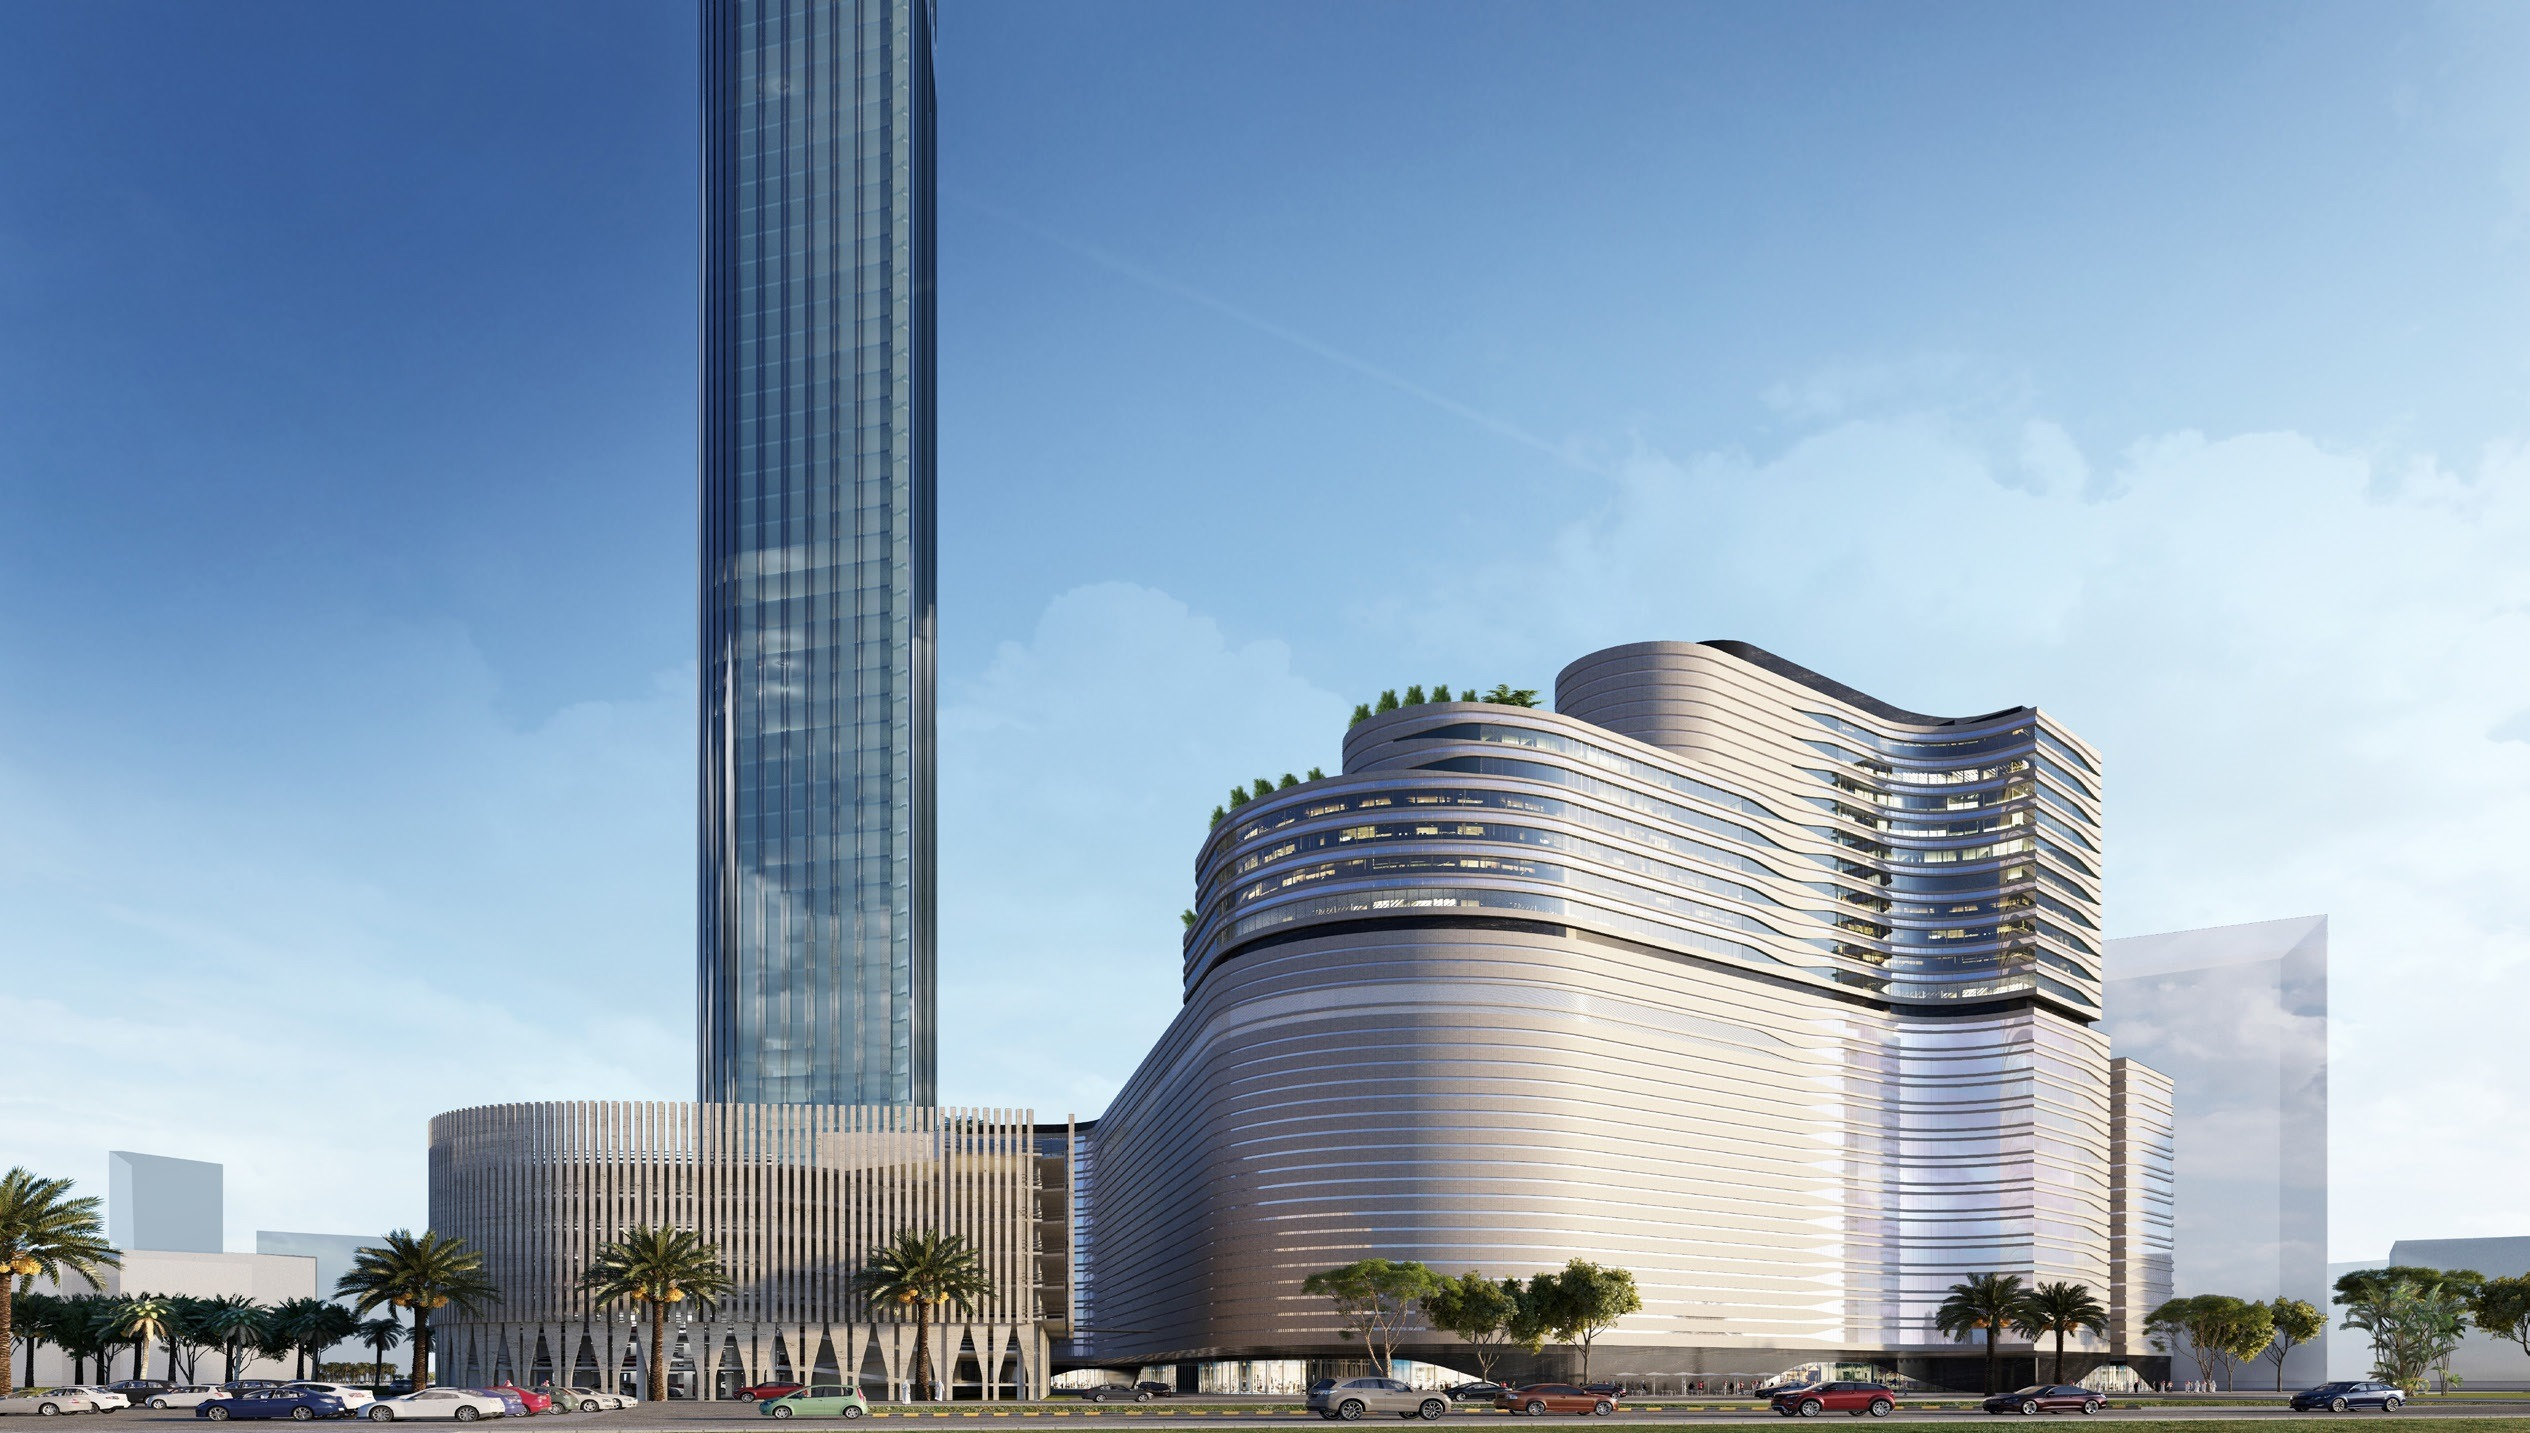 Kuwait City launches largest commercial-hotel project